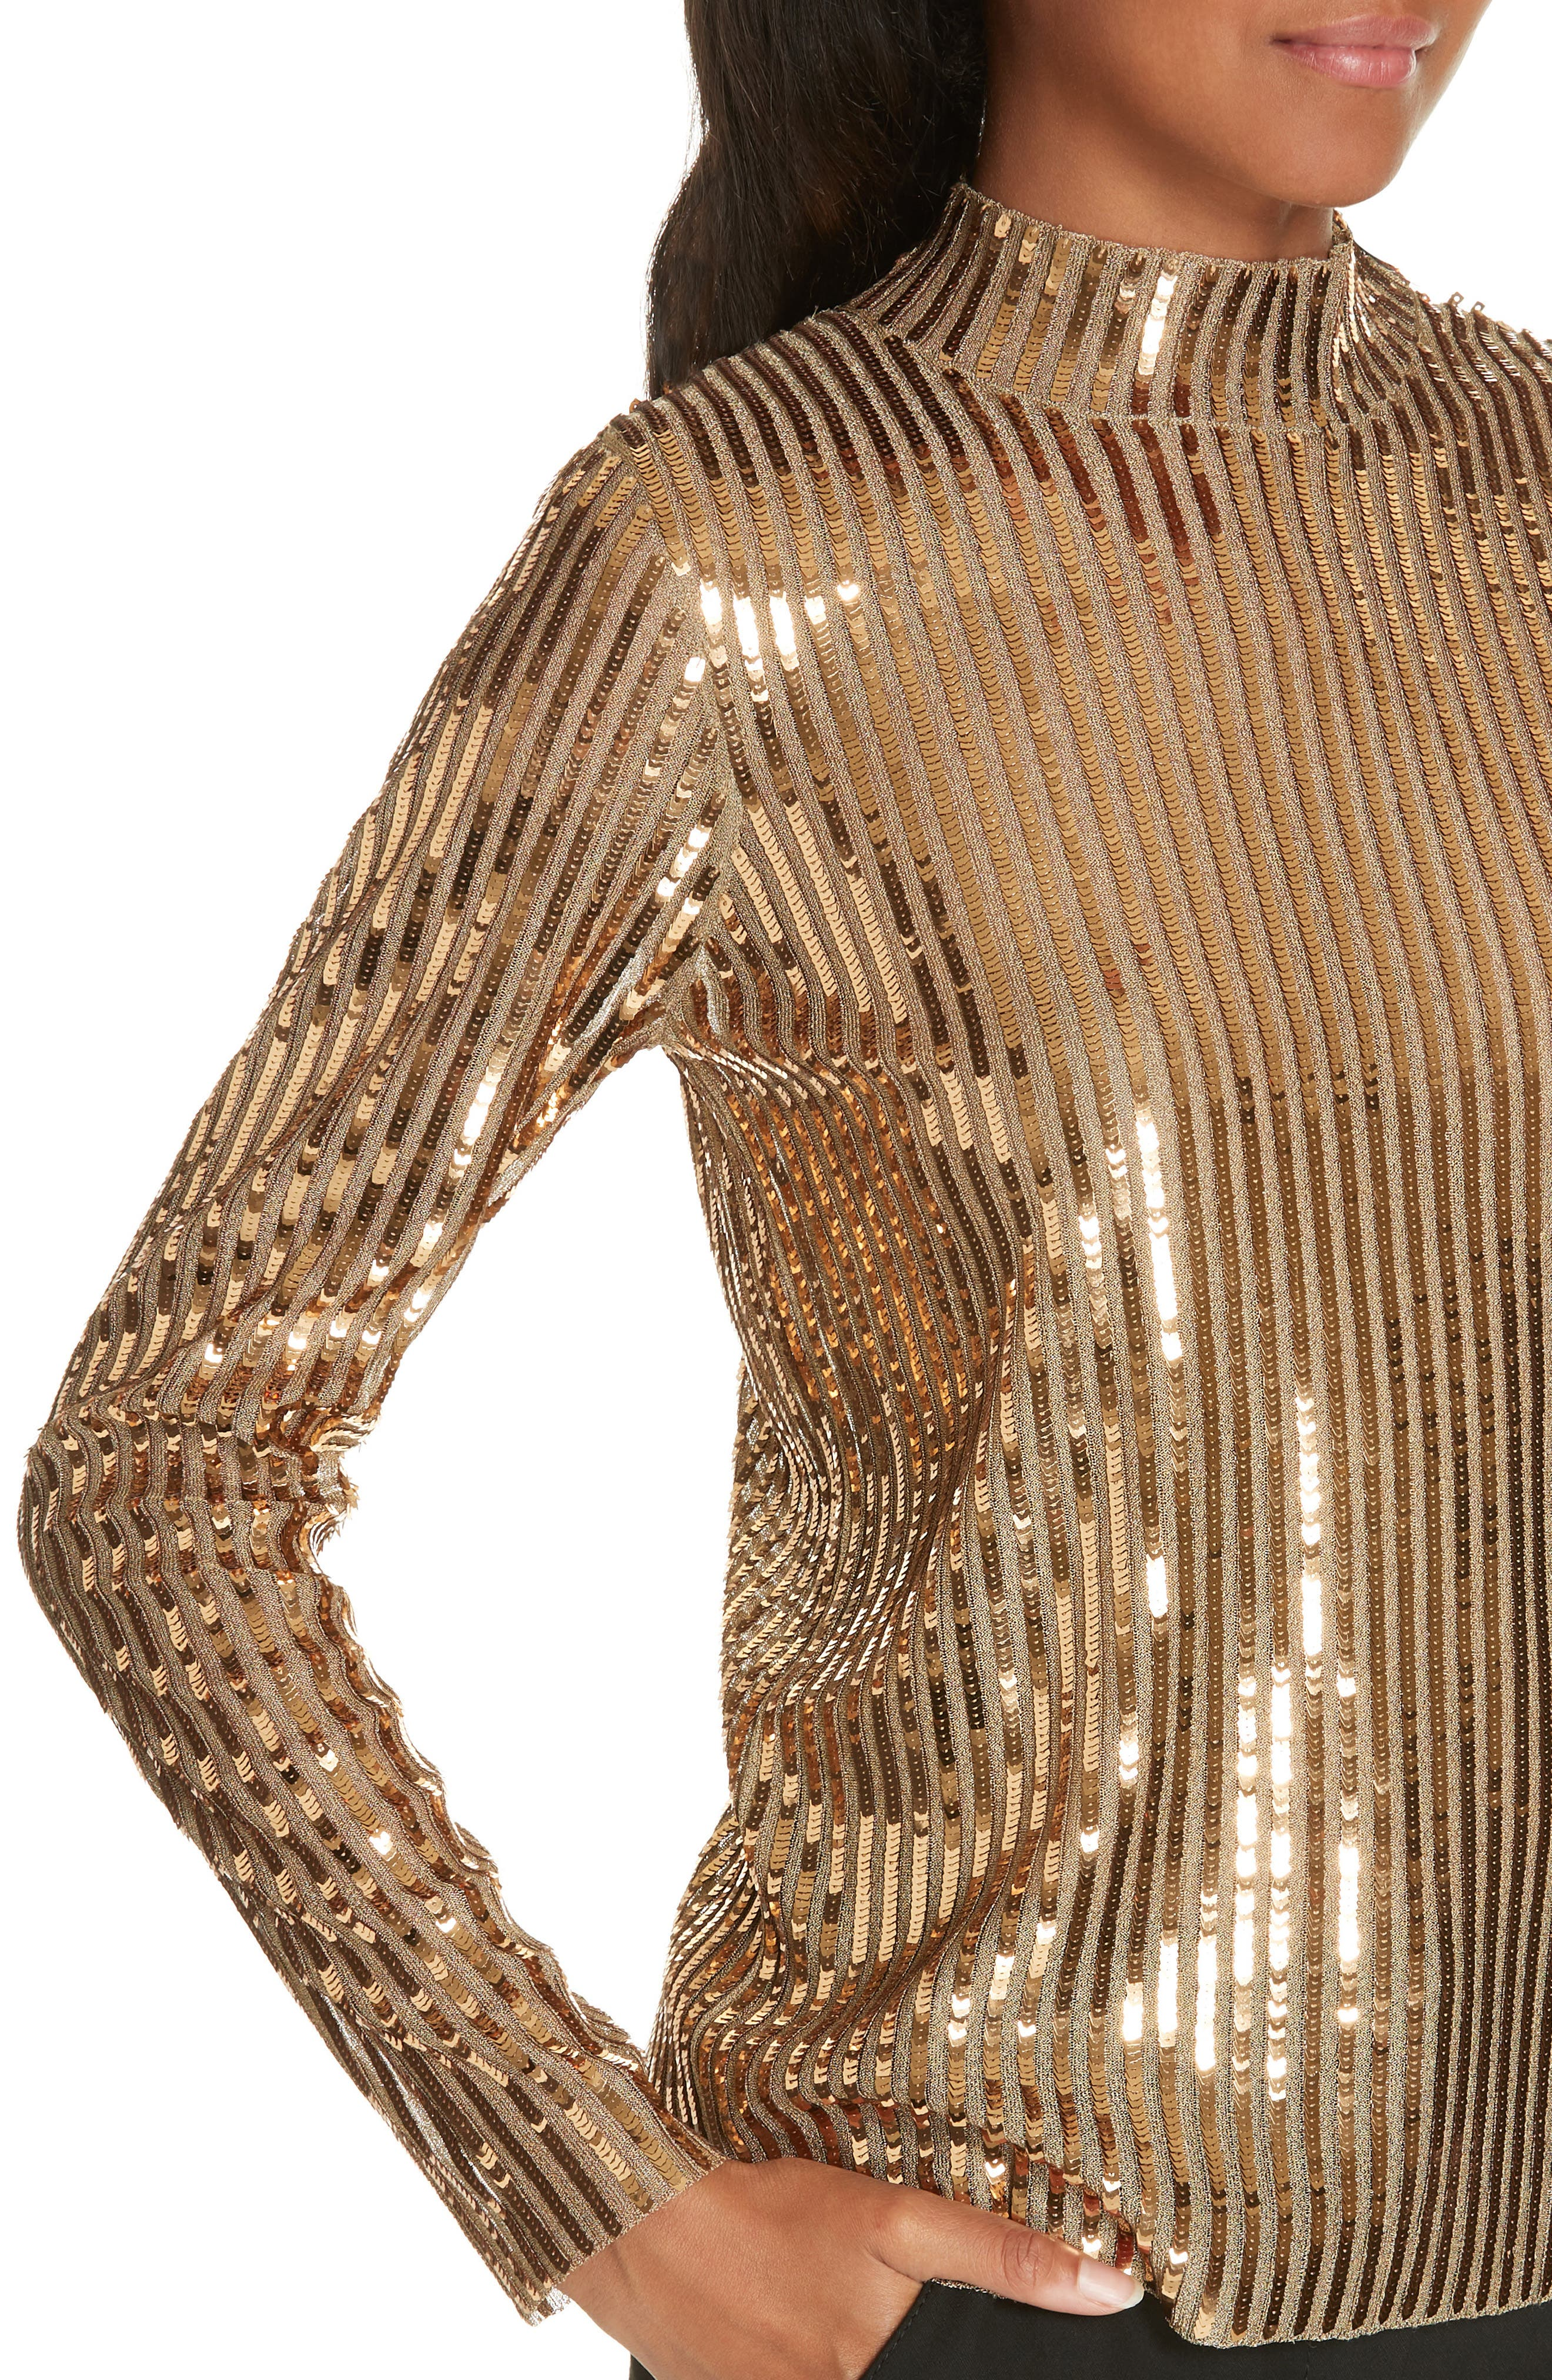 TANYA TAYLOR, Grace Gold Sequins Top, Alternate thumbnail 4, color, 712